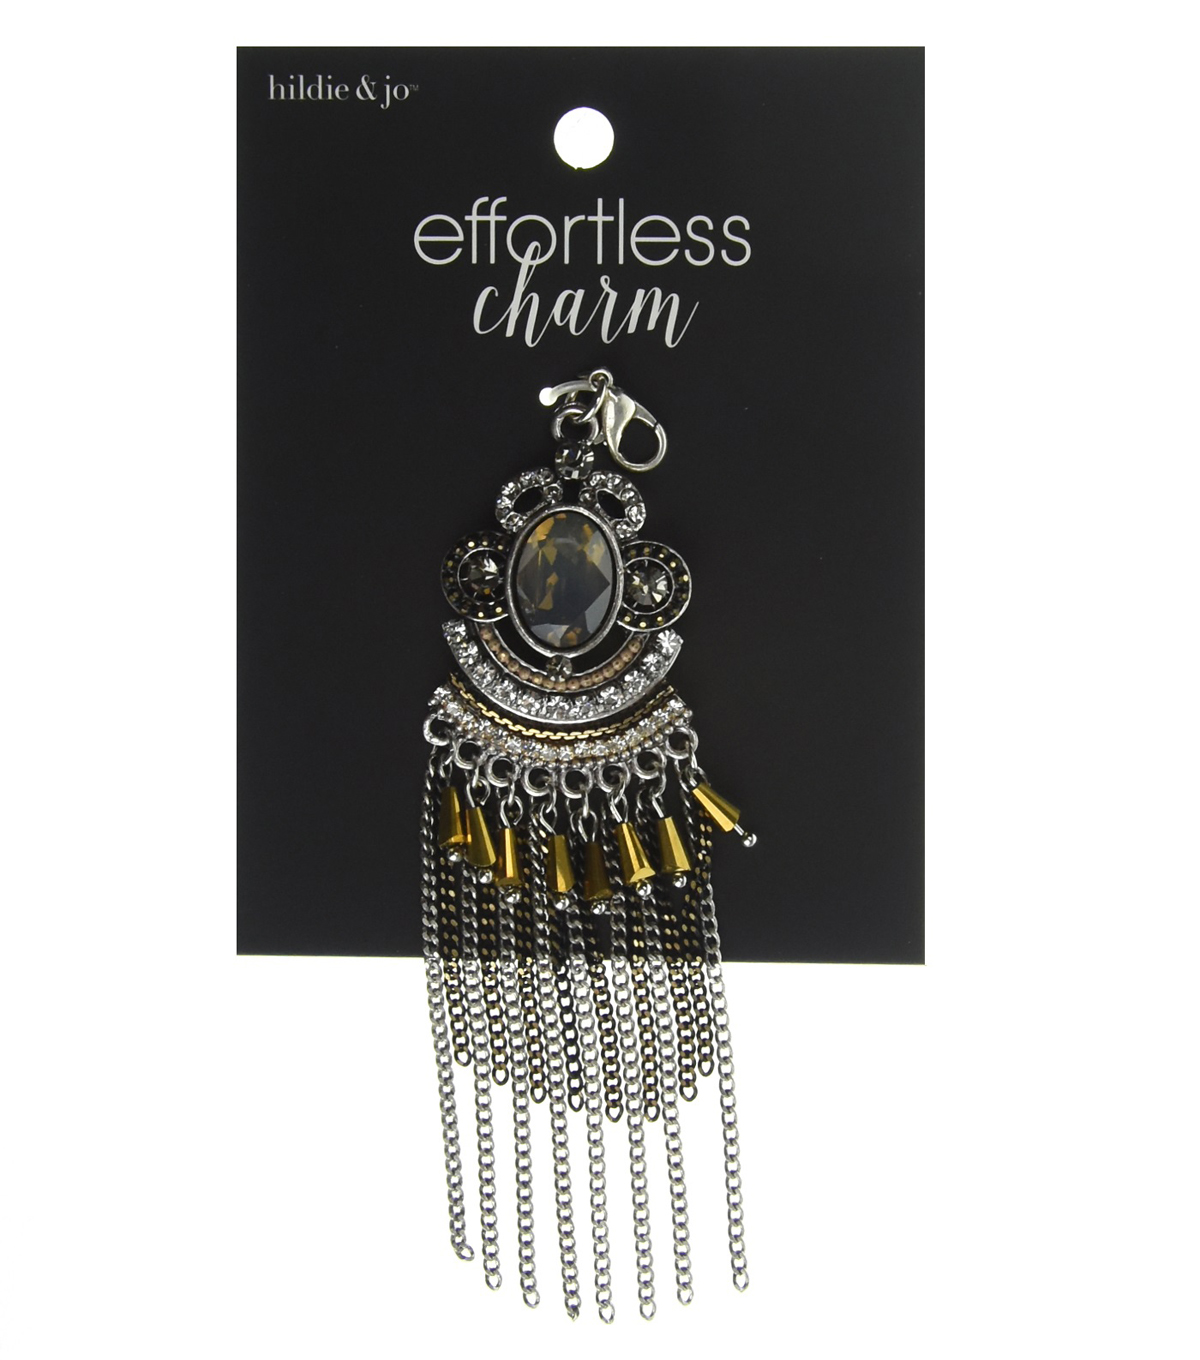 hildie & jo Effortless Charm Silver Tassel-Gold Stones